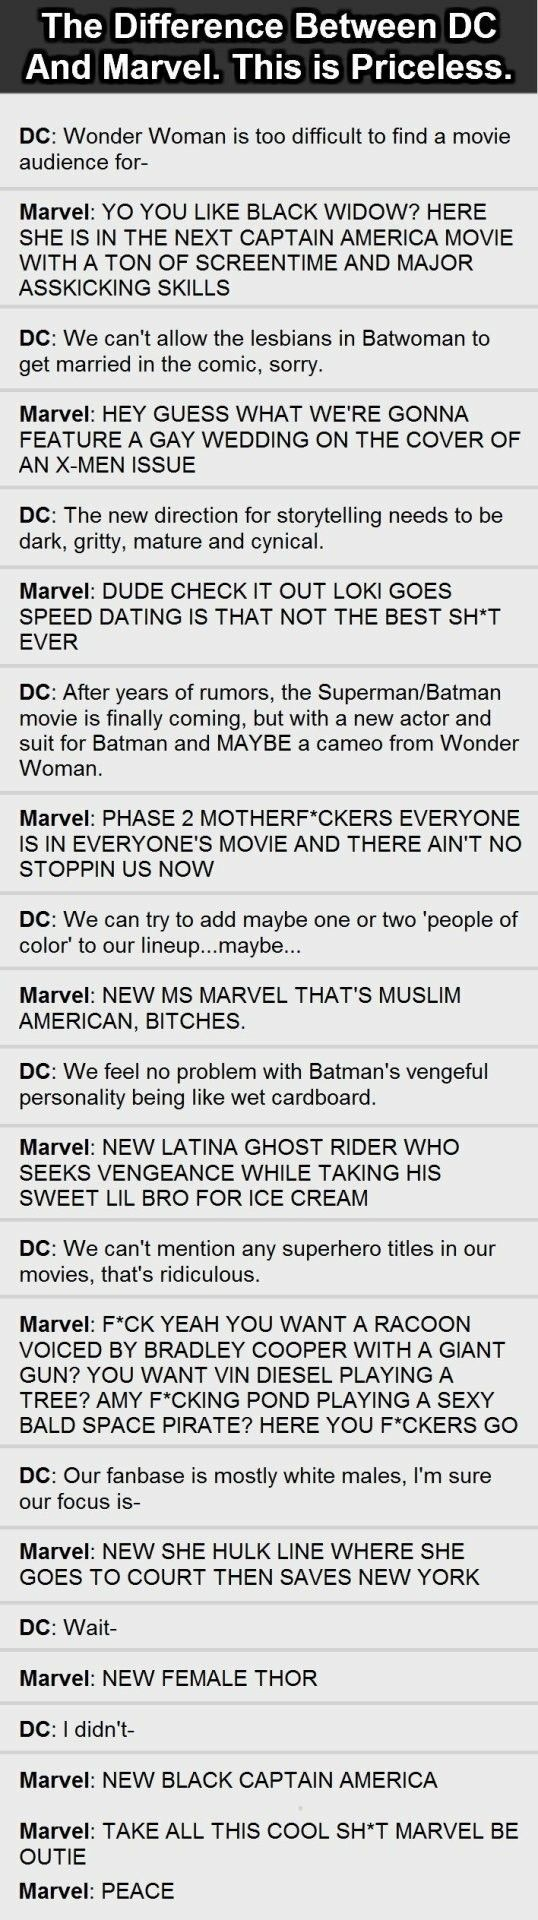 Marvel gives us what we want. Take notes, DC